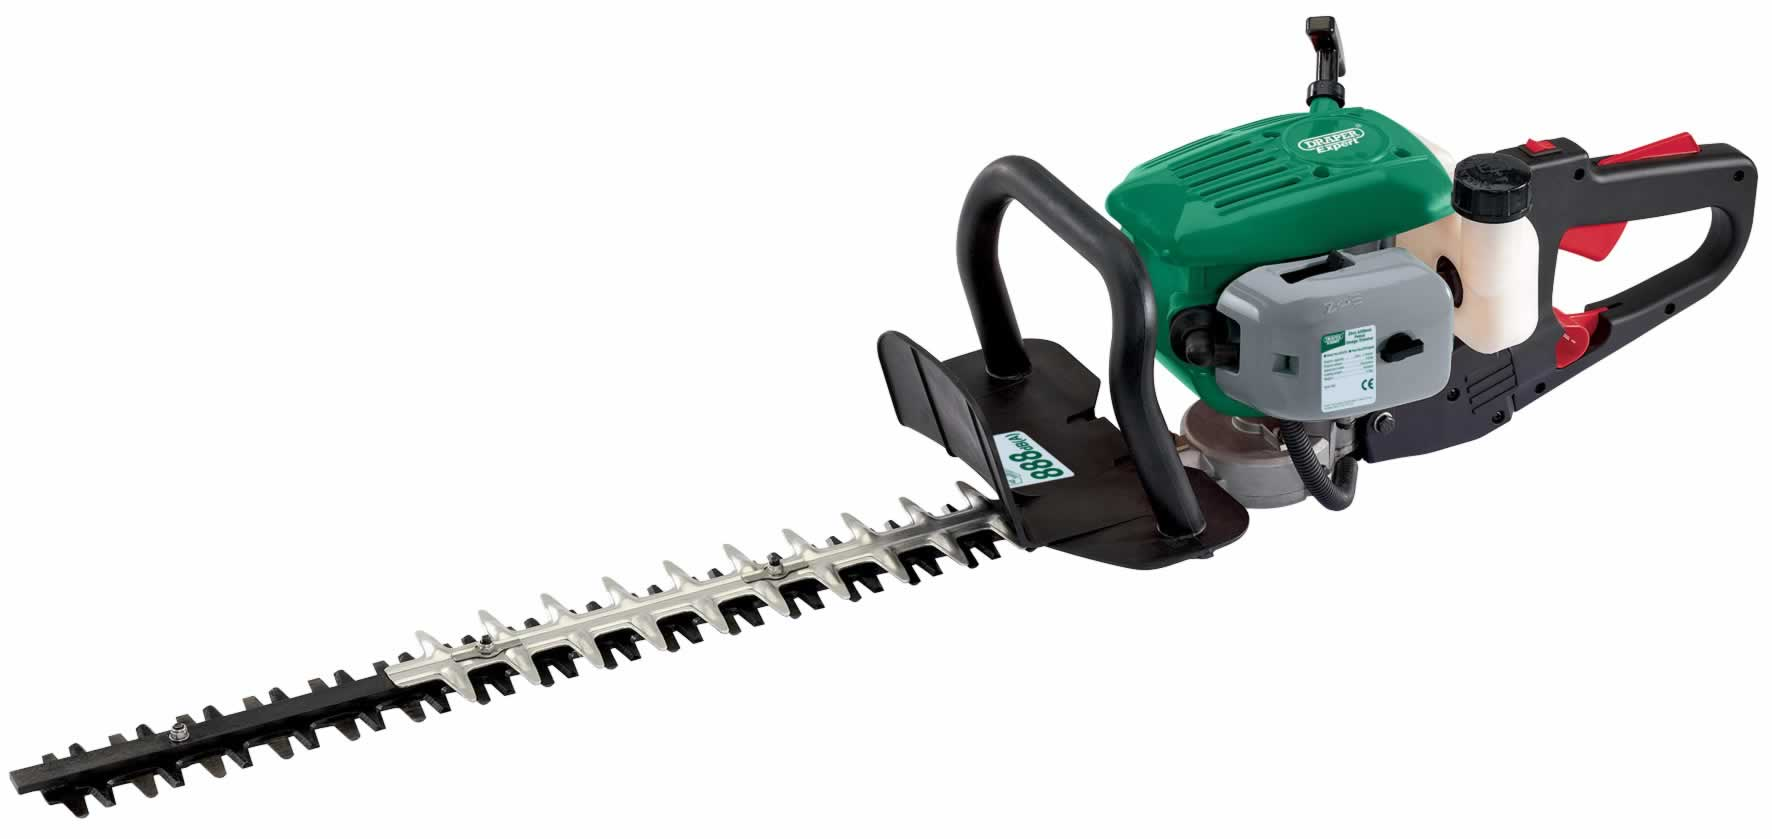 EXPERT 26CC 400MM PETROL HEDGE TRIMMER